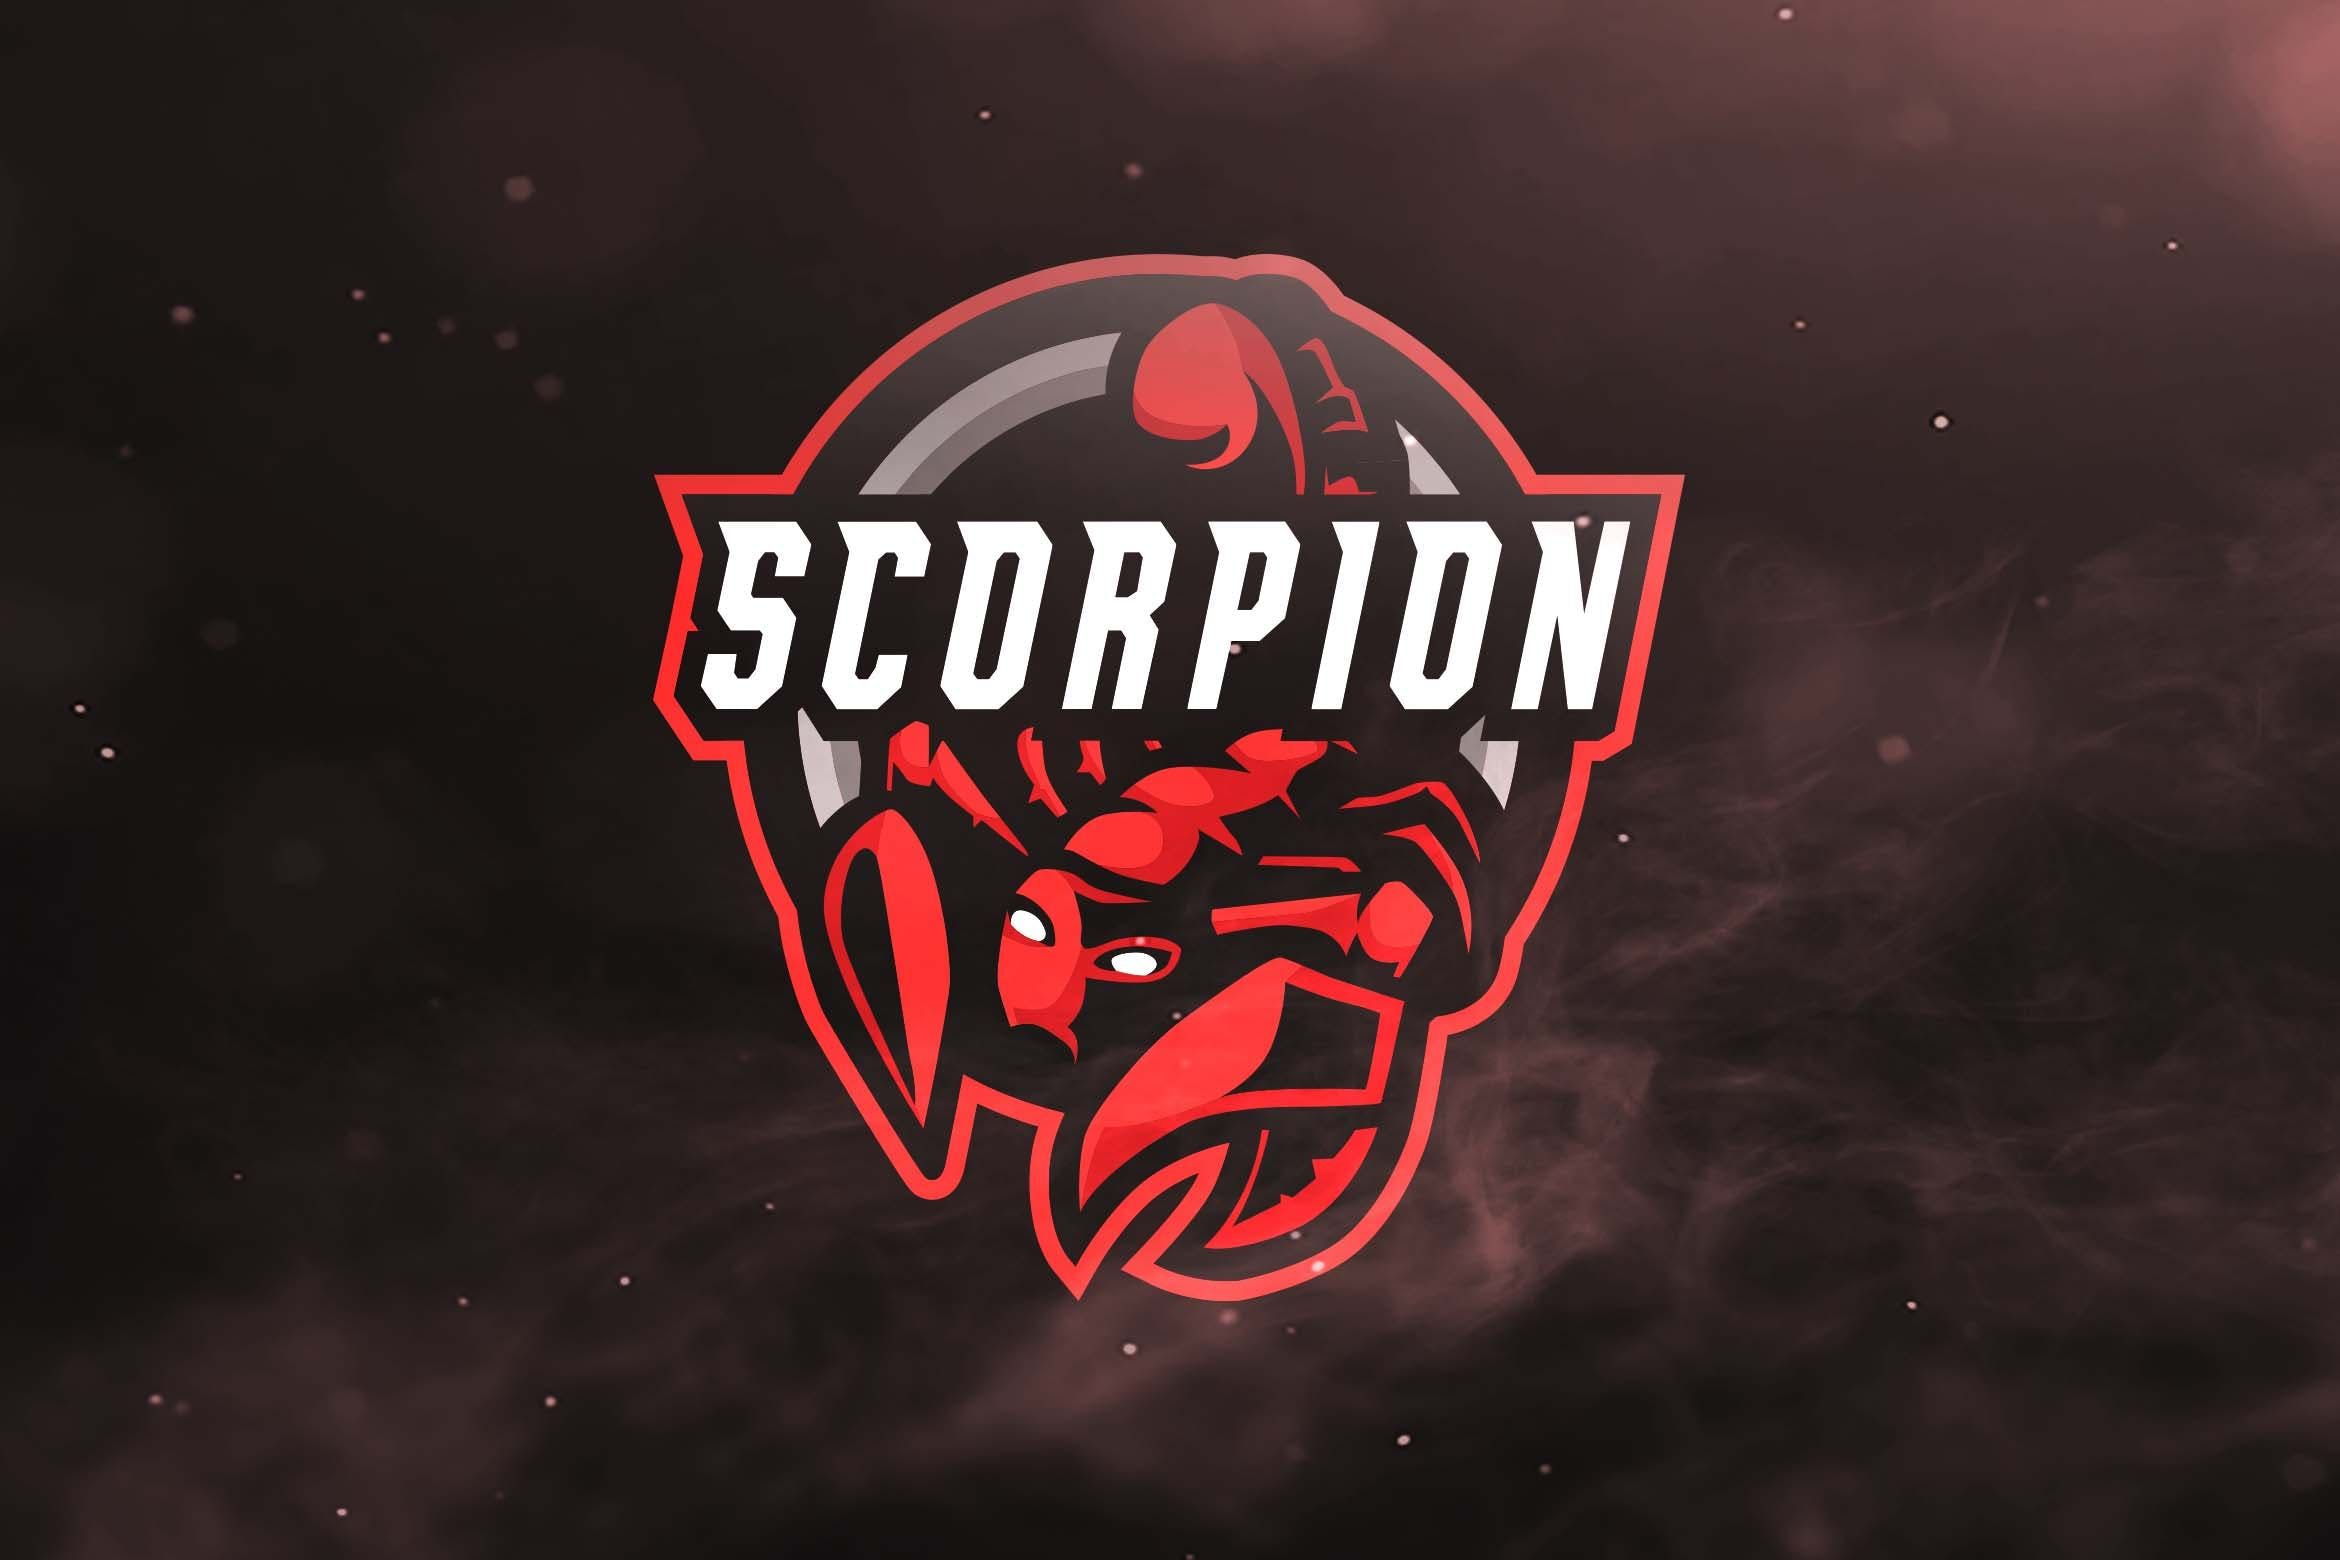 Scorpion Sport And Esports Logos Logo Logos Sport Sports Esport Esports Game Gaming Template Templates De Esports Logo Templates Graphic